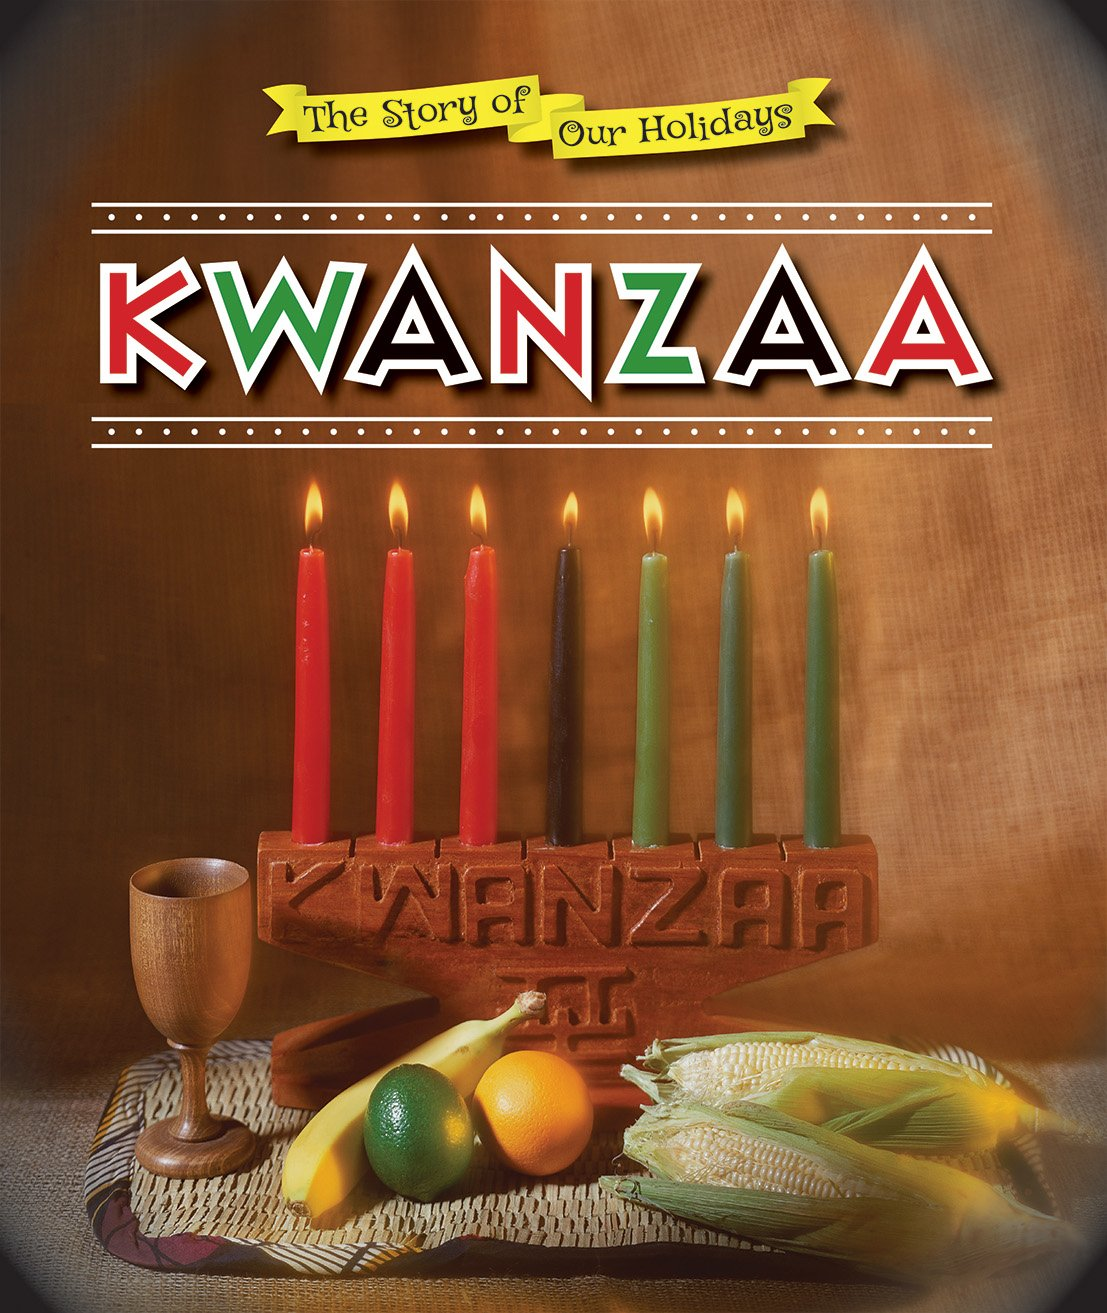 Kwanzaa (The Story of Our Holidays)